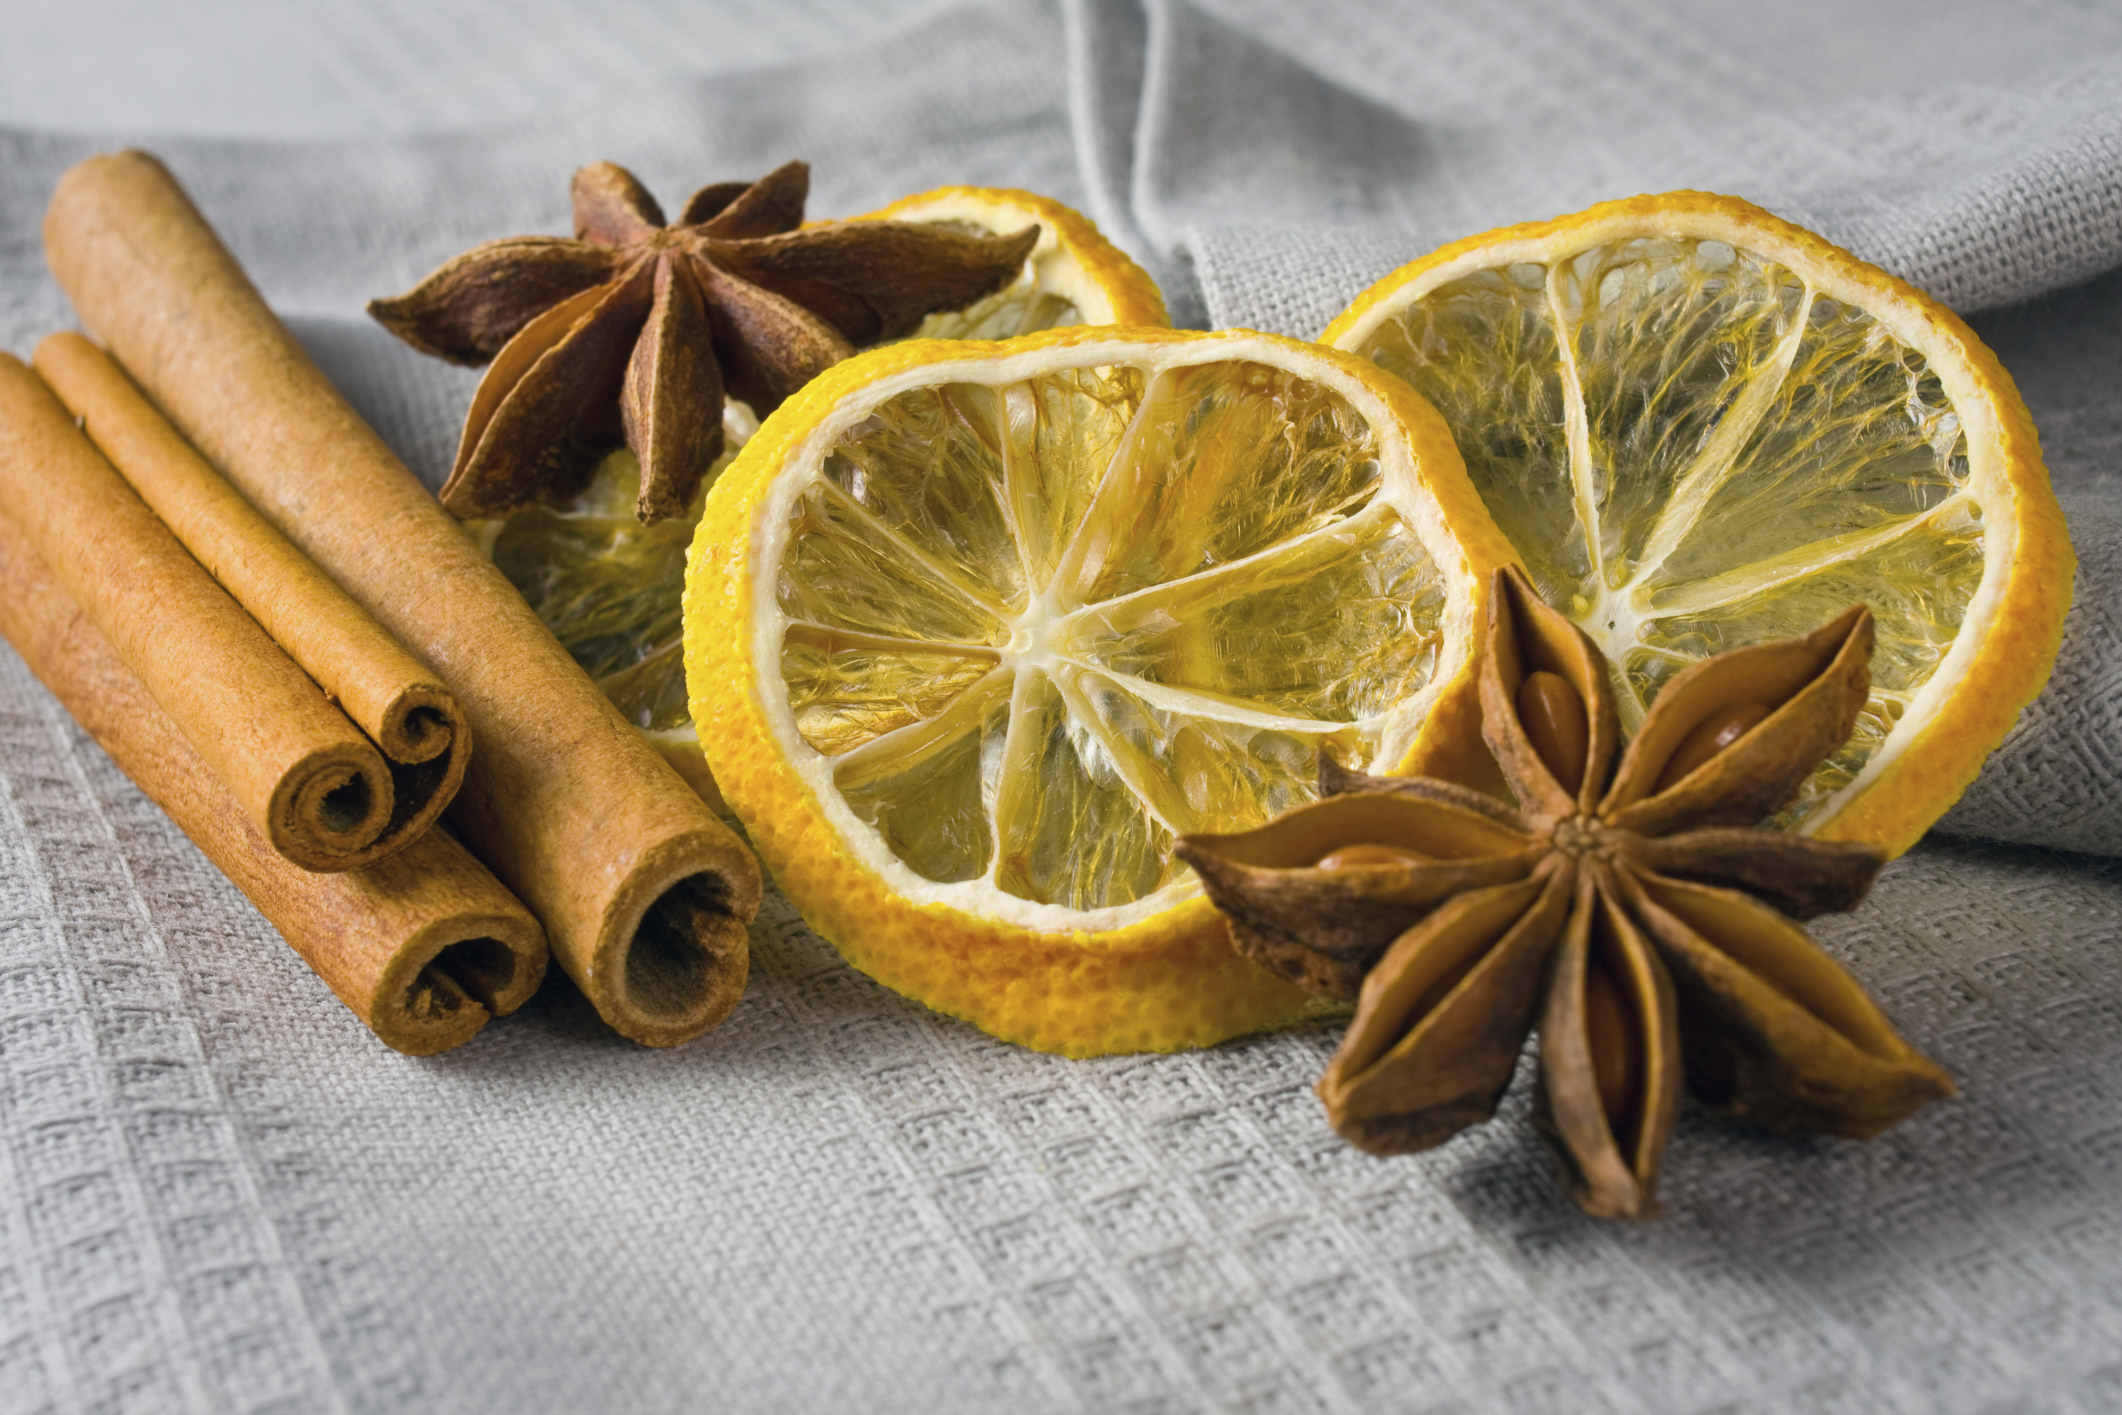 cinnamon sticks, anise stars and sliced of dried citrus